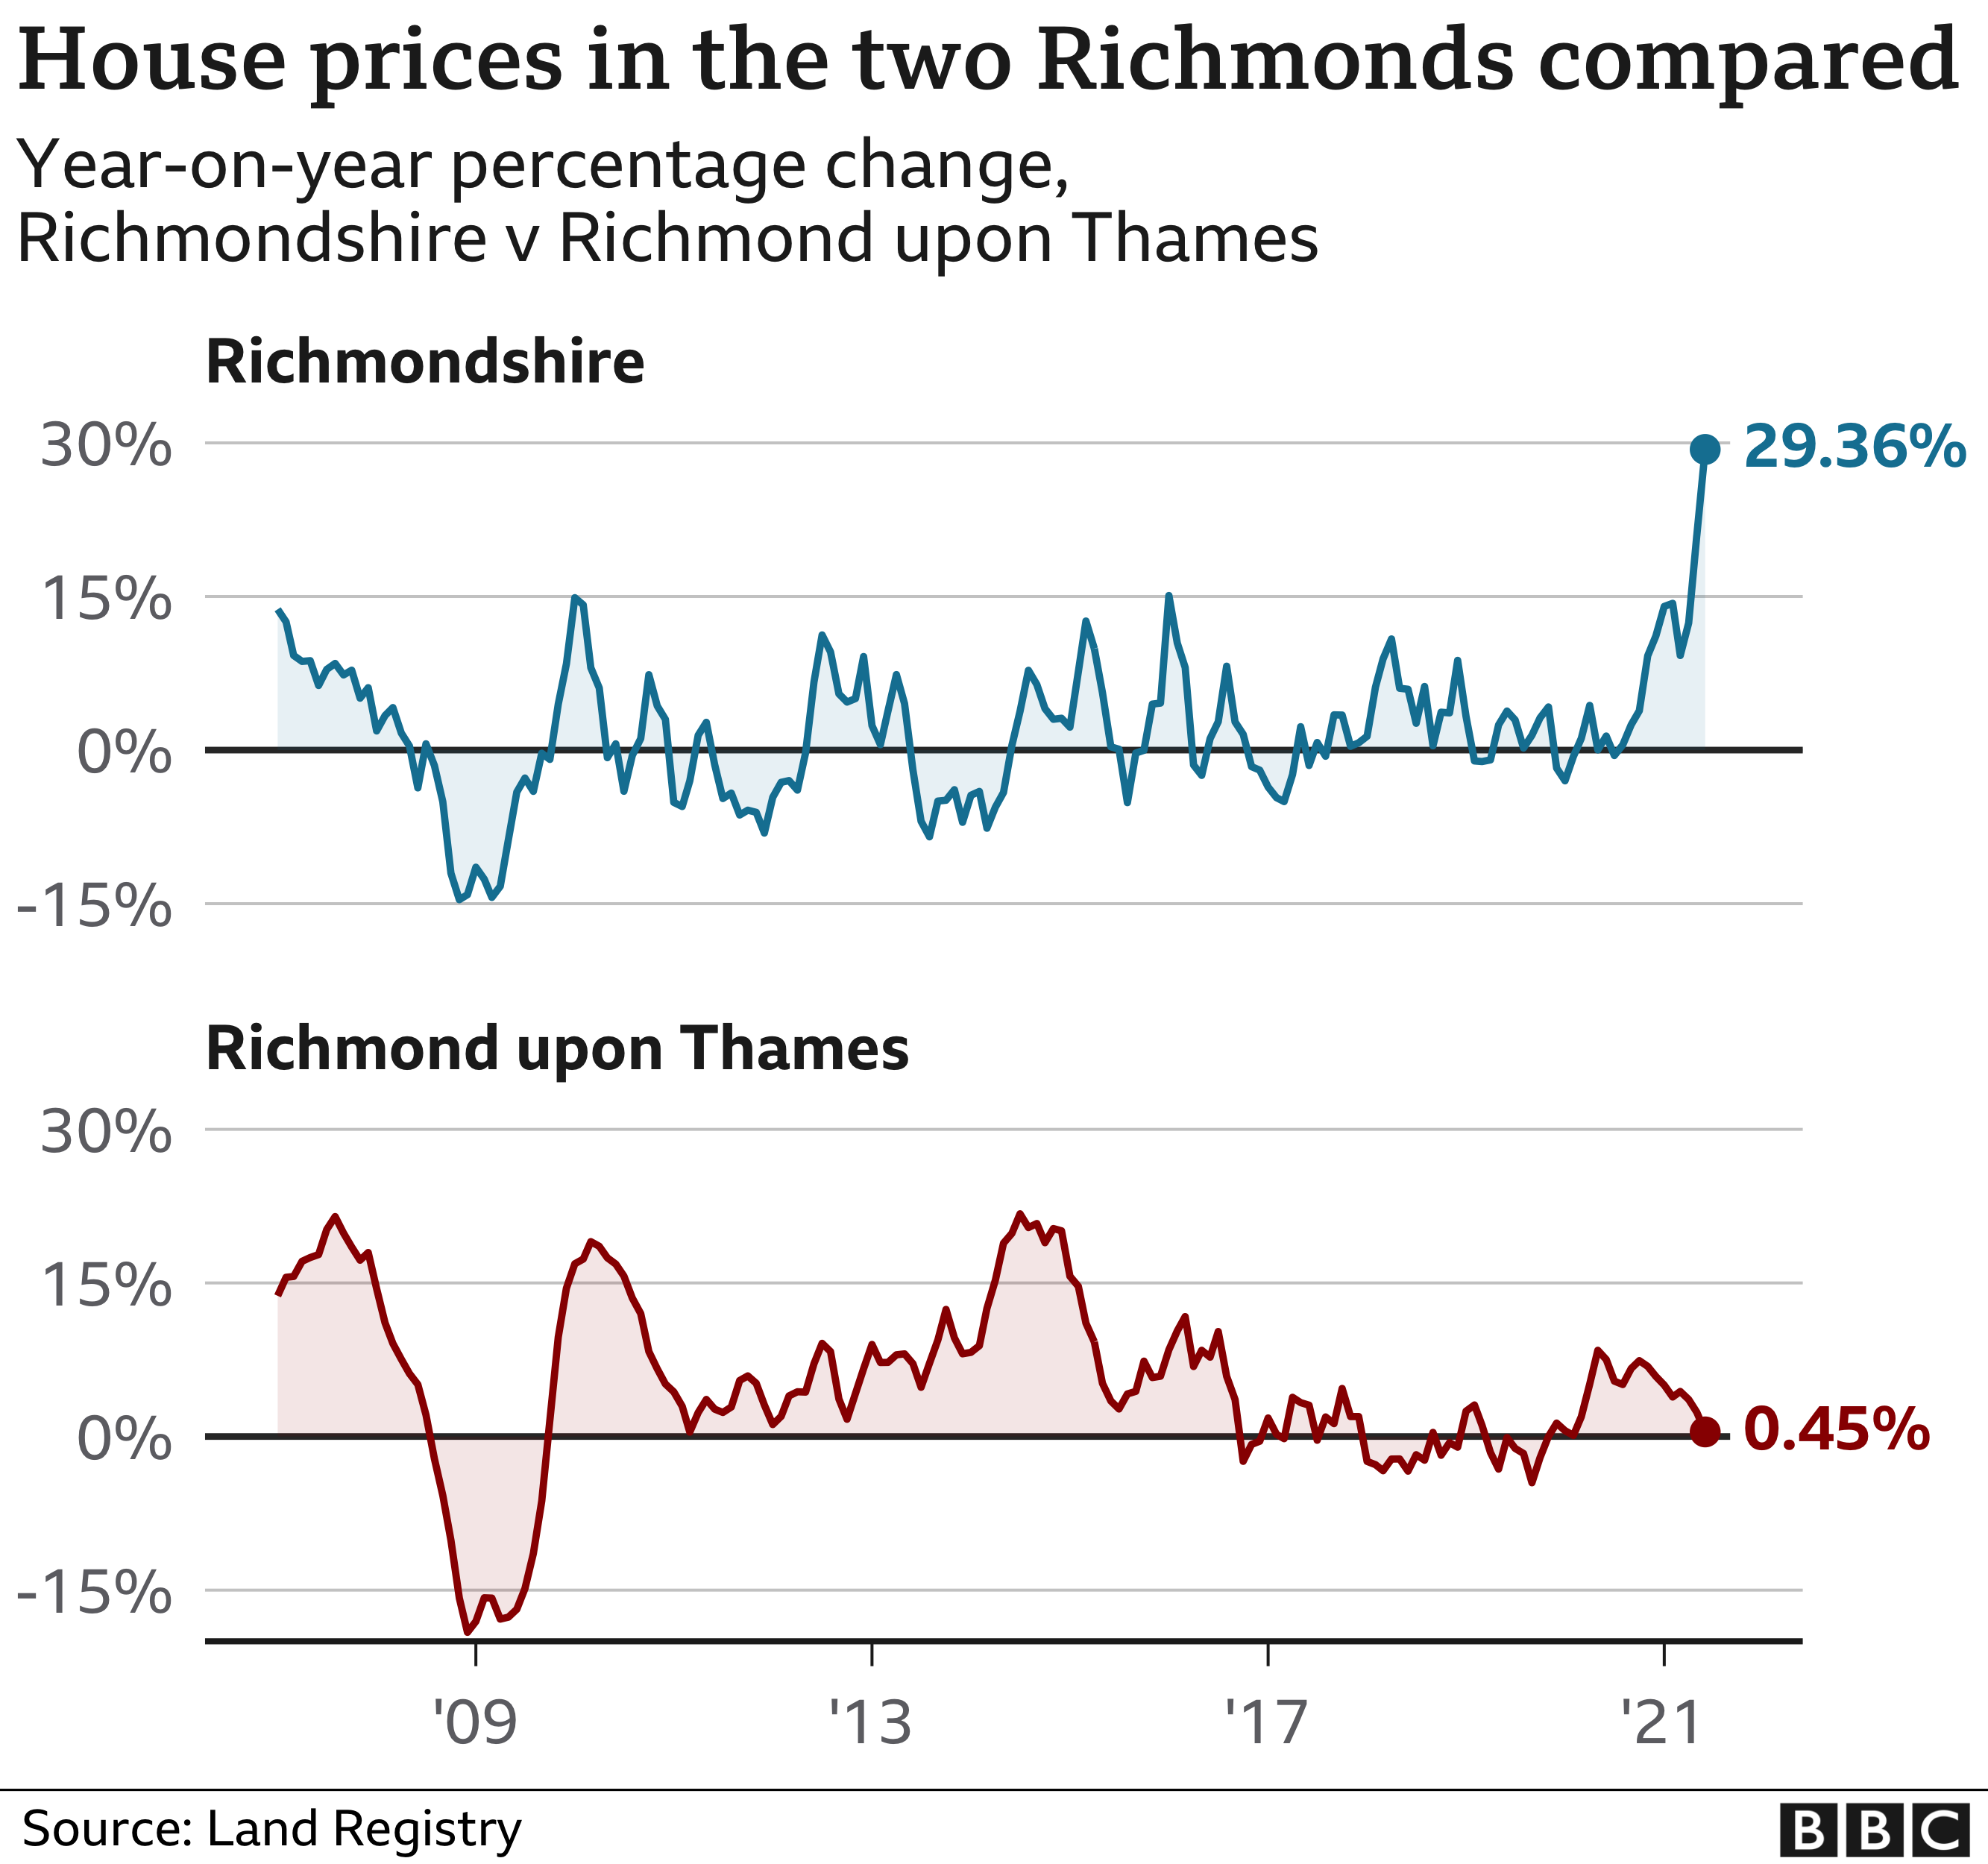 Annual house price changes in the two Richmonds over time